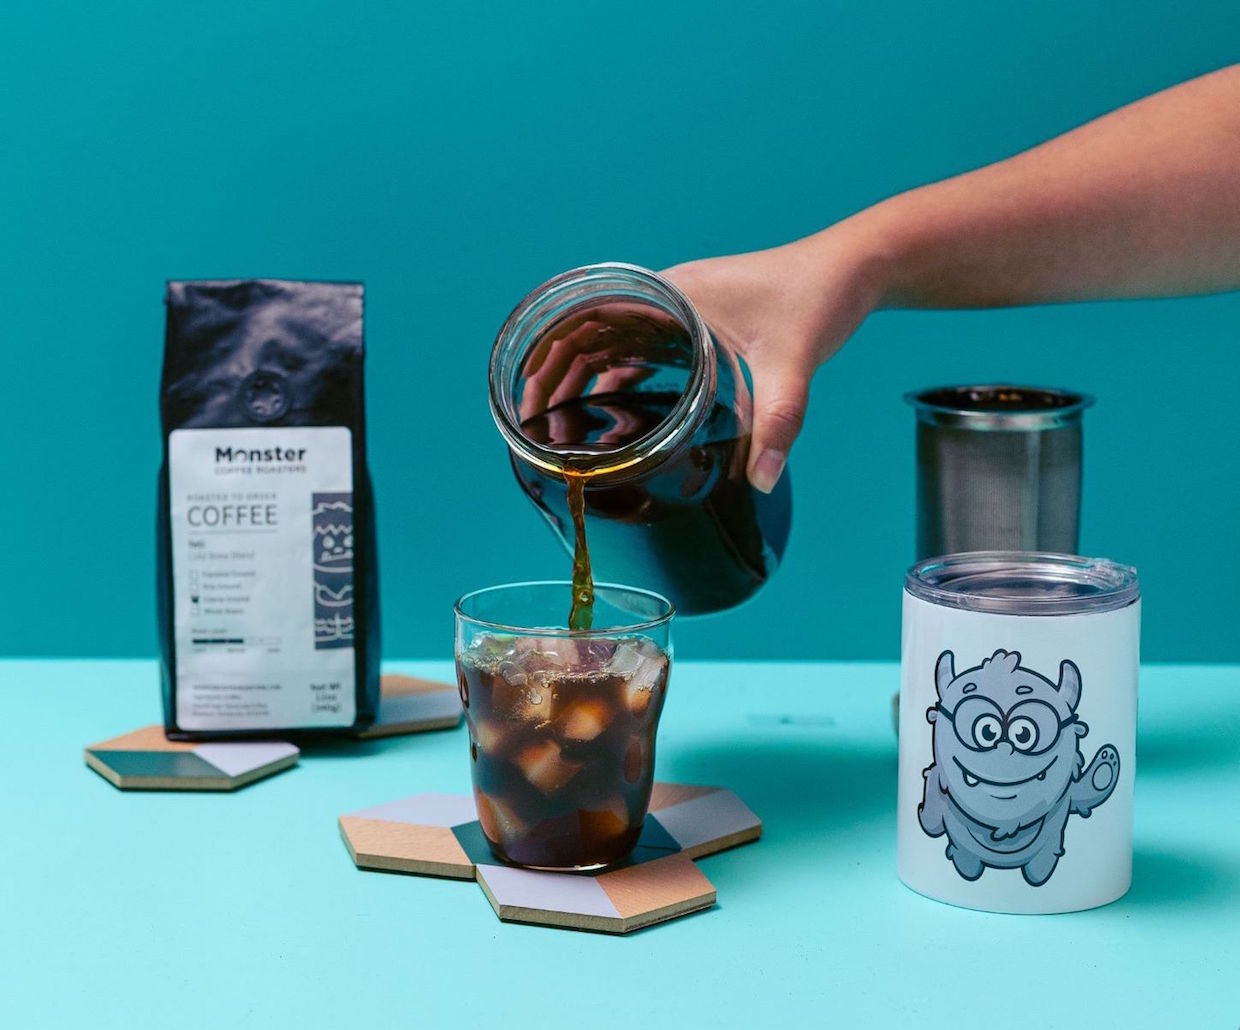 Monster Coffee Roasters cold brew